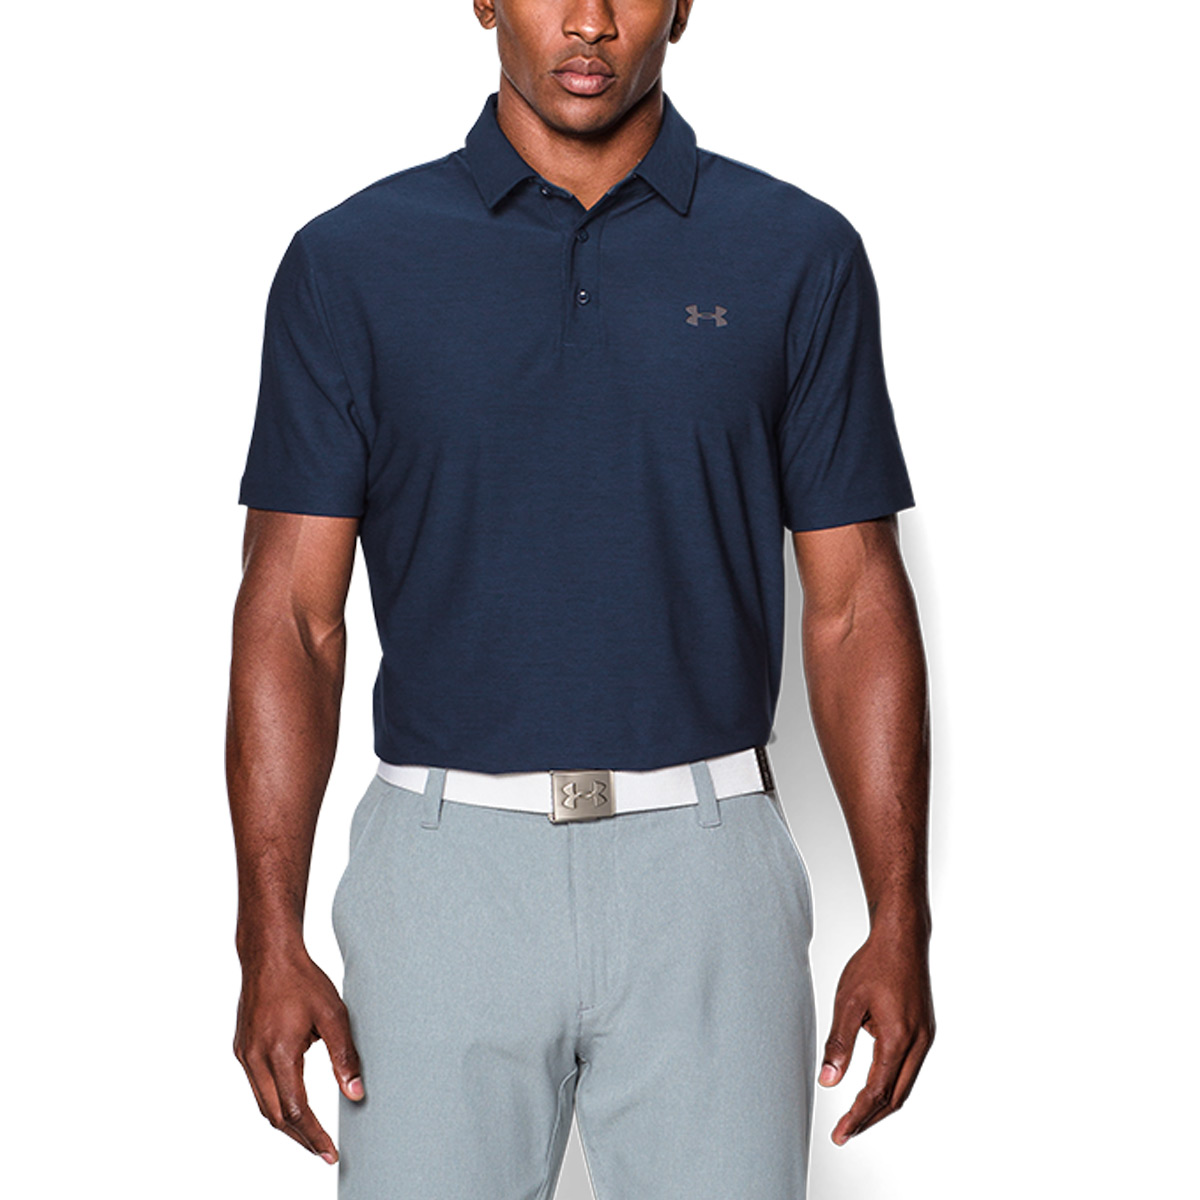 Under-Armour-Mens-UA-Playoff-Performance-Golf-Polo-Shirt-33-OFF-RRP thumbnail 8